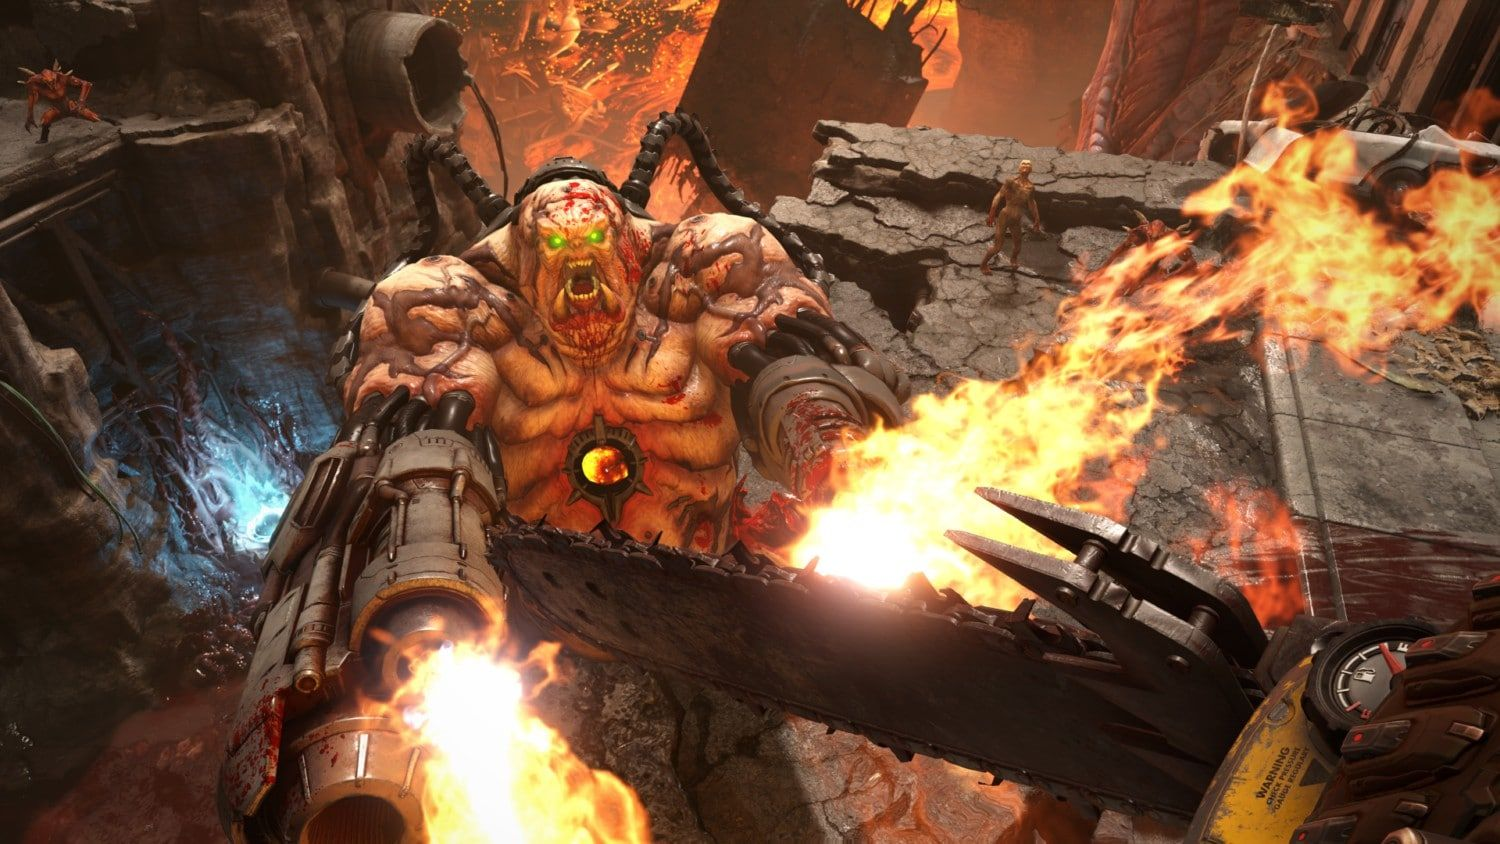 Doom Eternal Developer Multiplayer as satisfying as